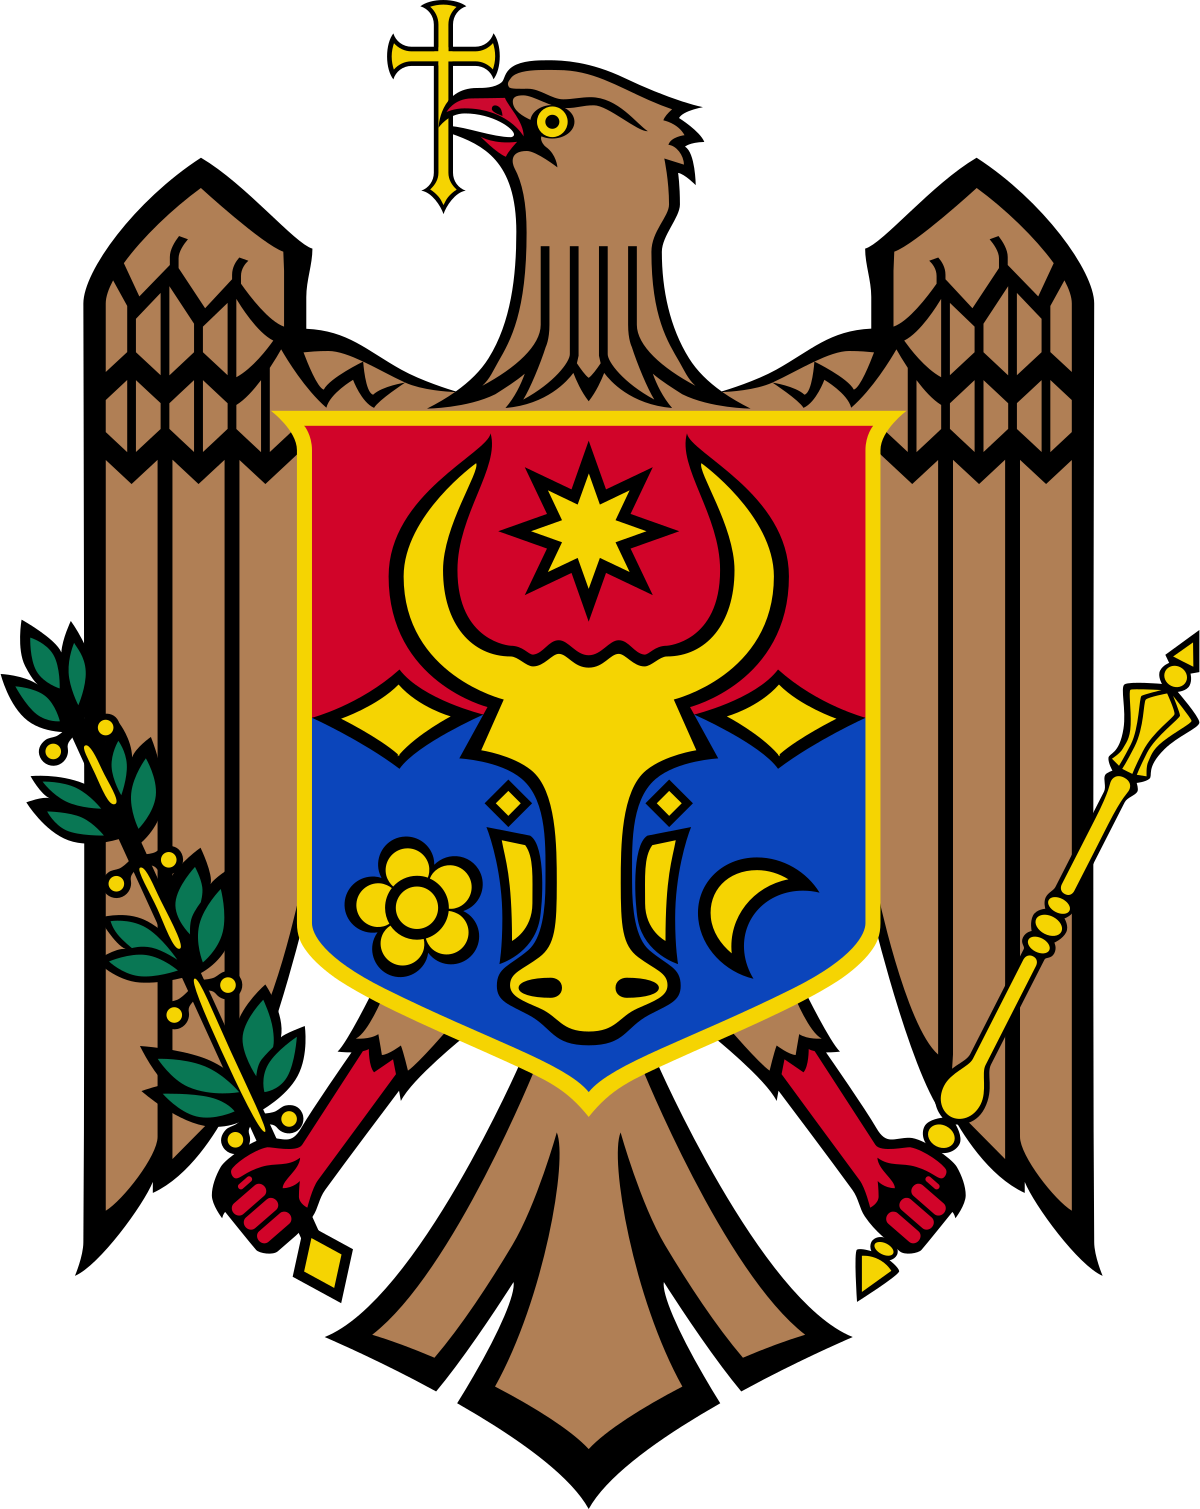 History clipart declaration independence. Politics of moldova wikipedia